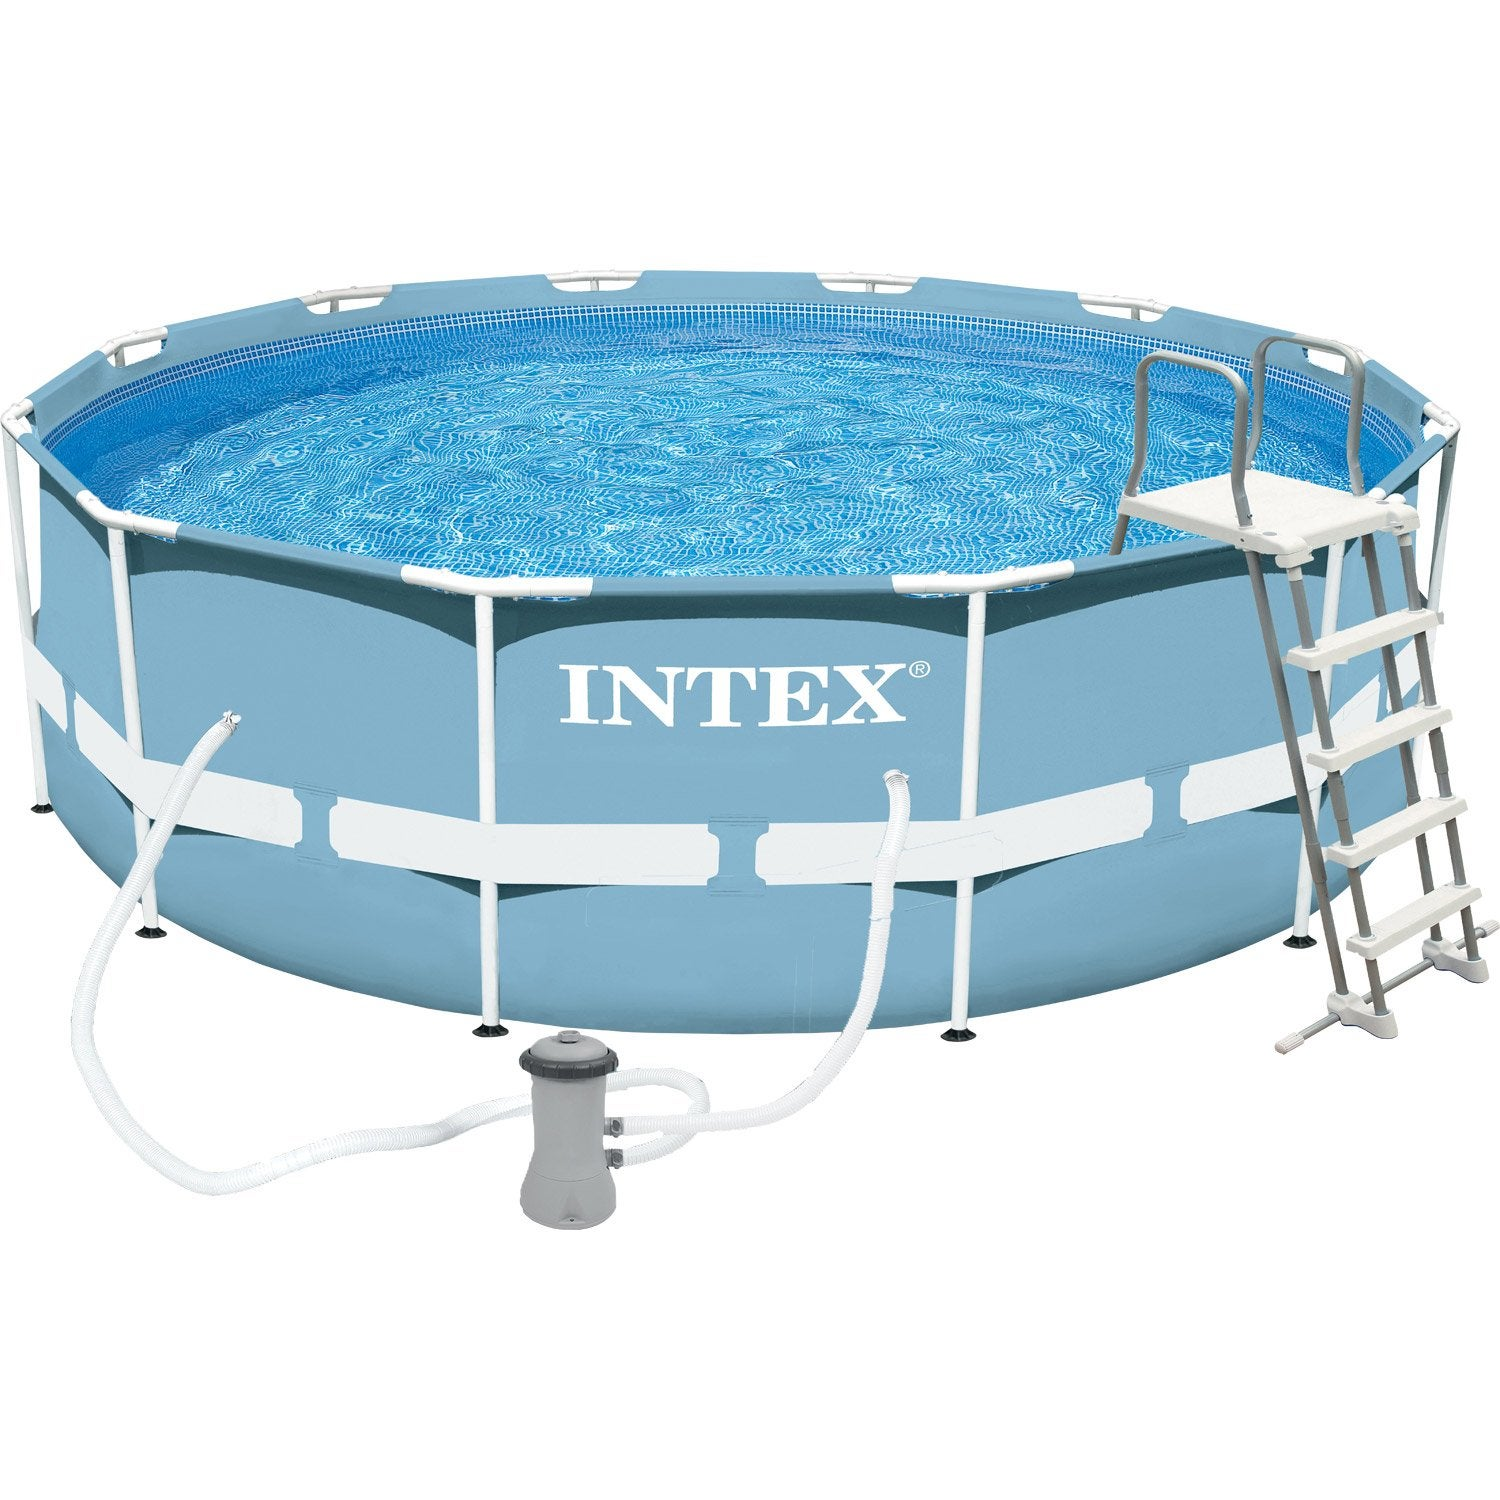 Piscine hors sol autoportante tubulaire prism frame intex for Piscine tubulaire hauteur 1 m